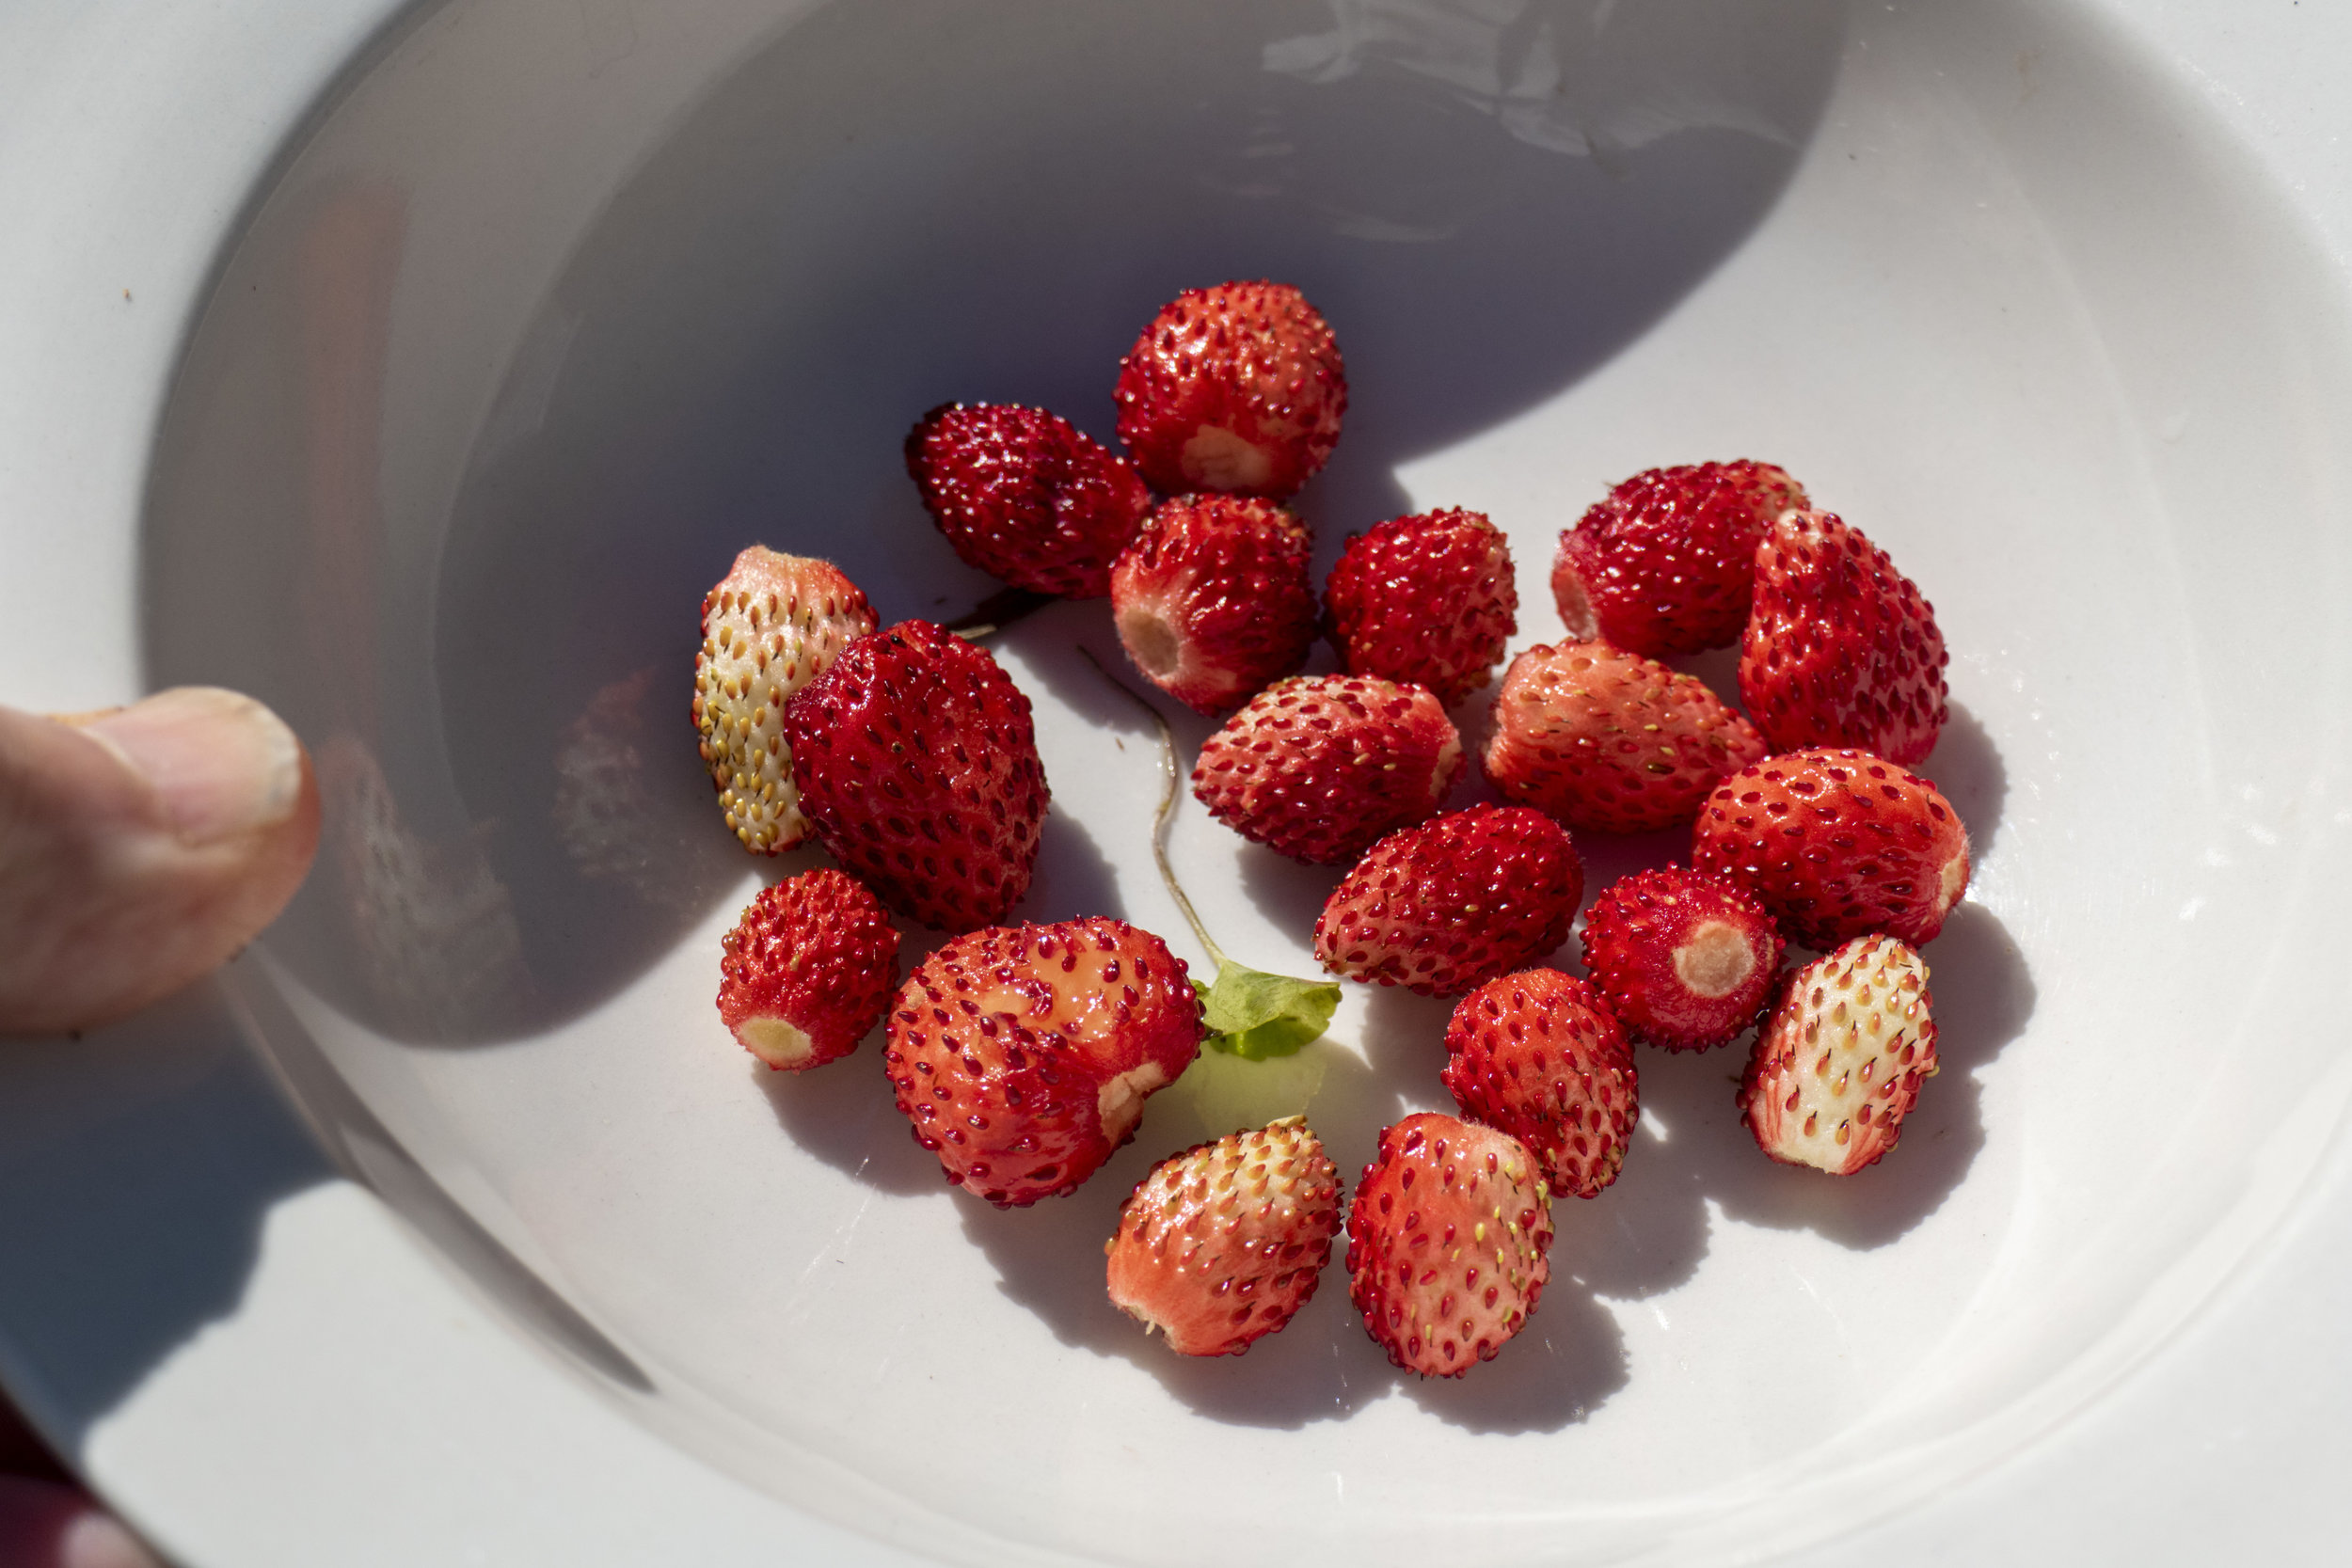 wildstrawberries_4.jpg